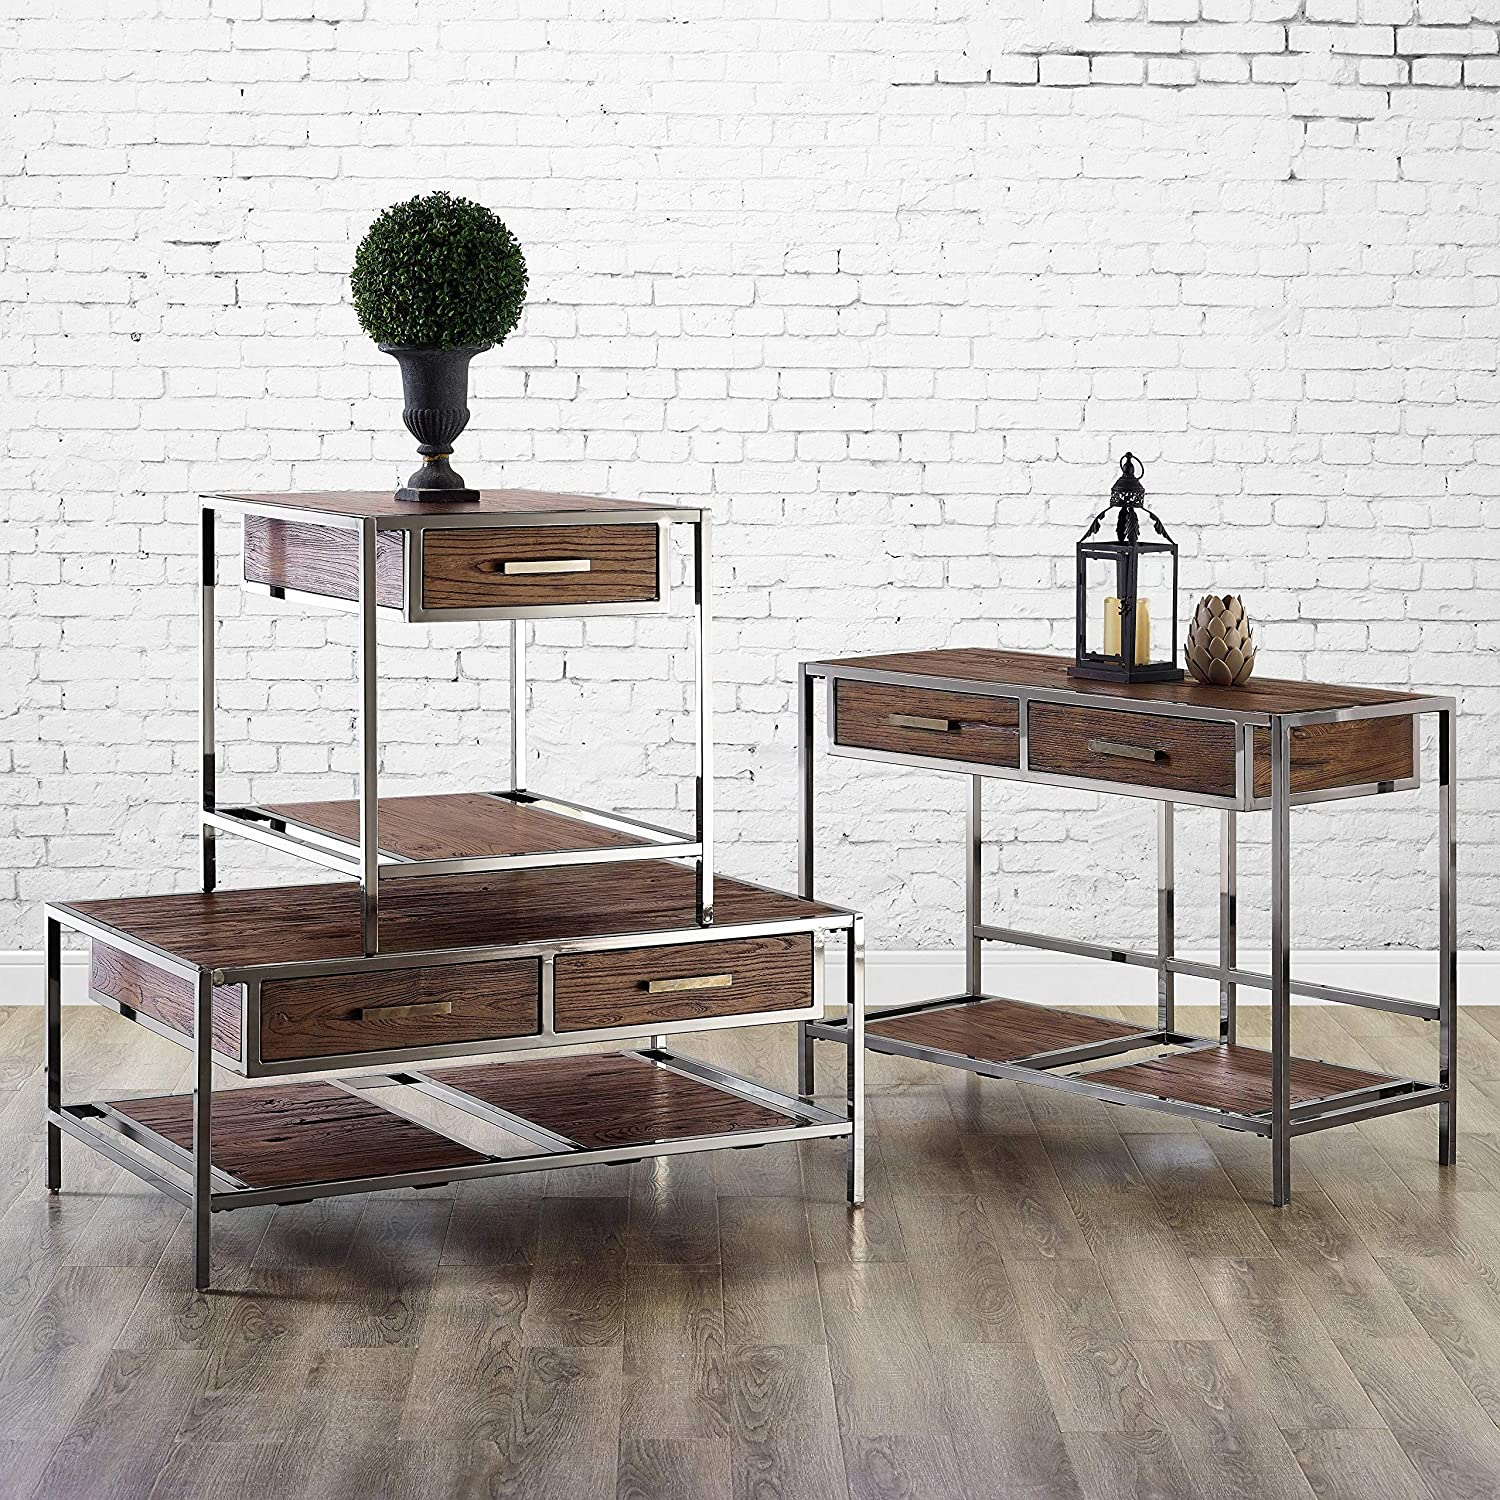 Pulaski Modern Industrial-Style Wood and Metal Sofa table Brown